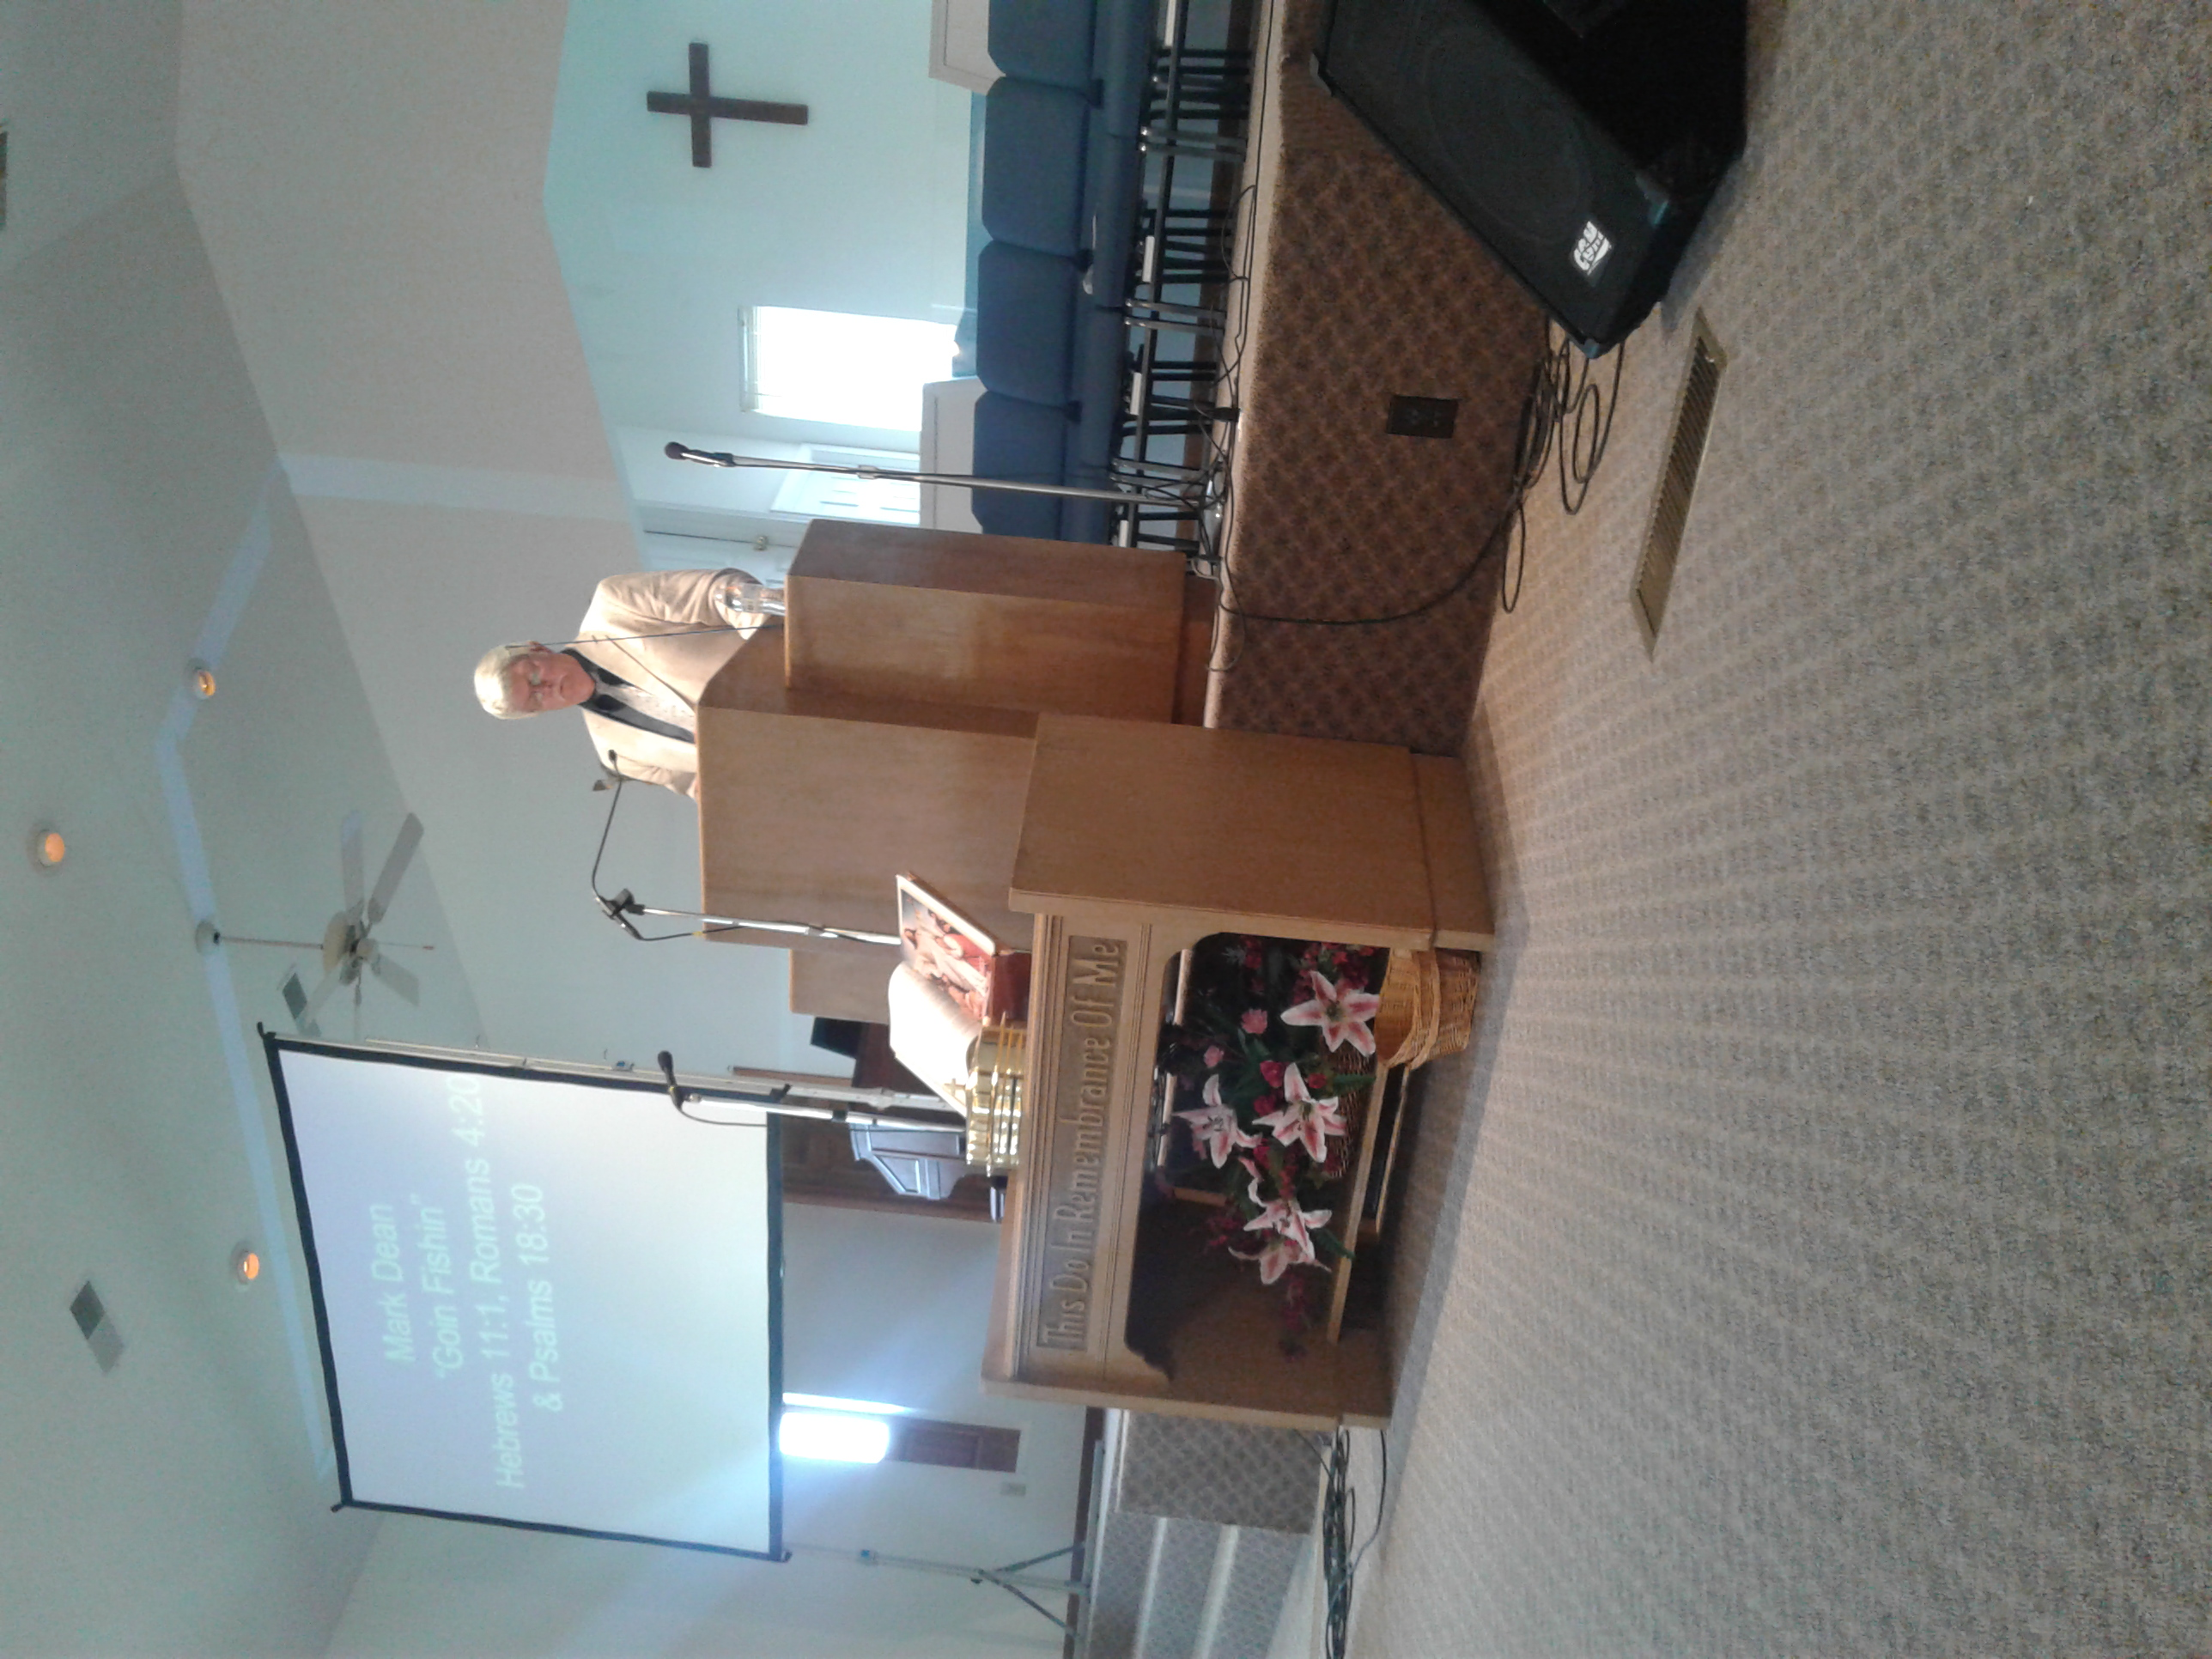 Mark preaching goose creek 1